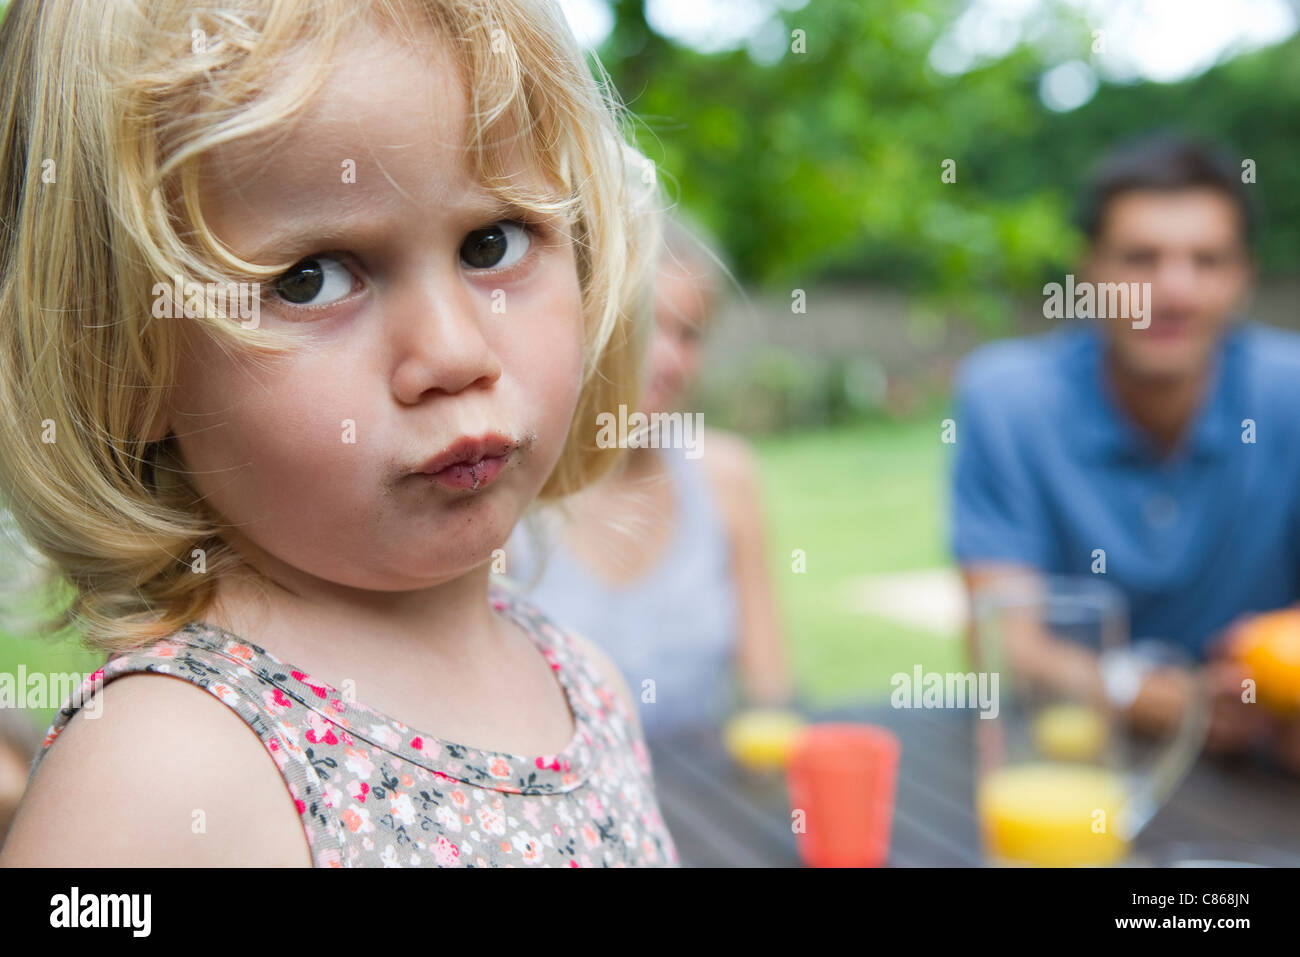 Little girl with messy face - Stock Image